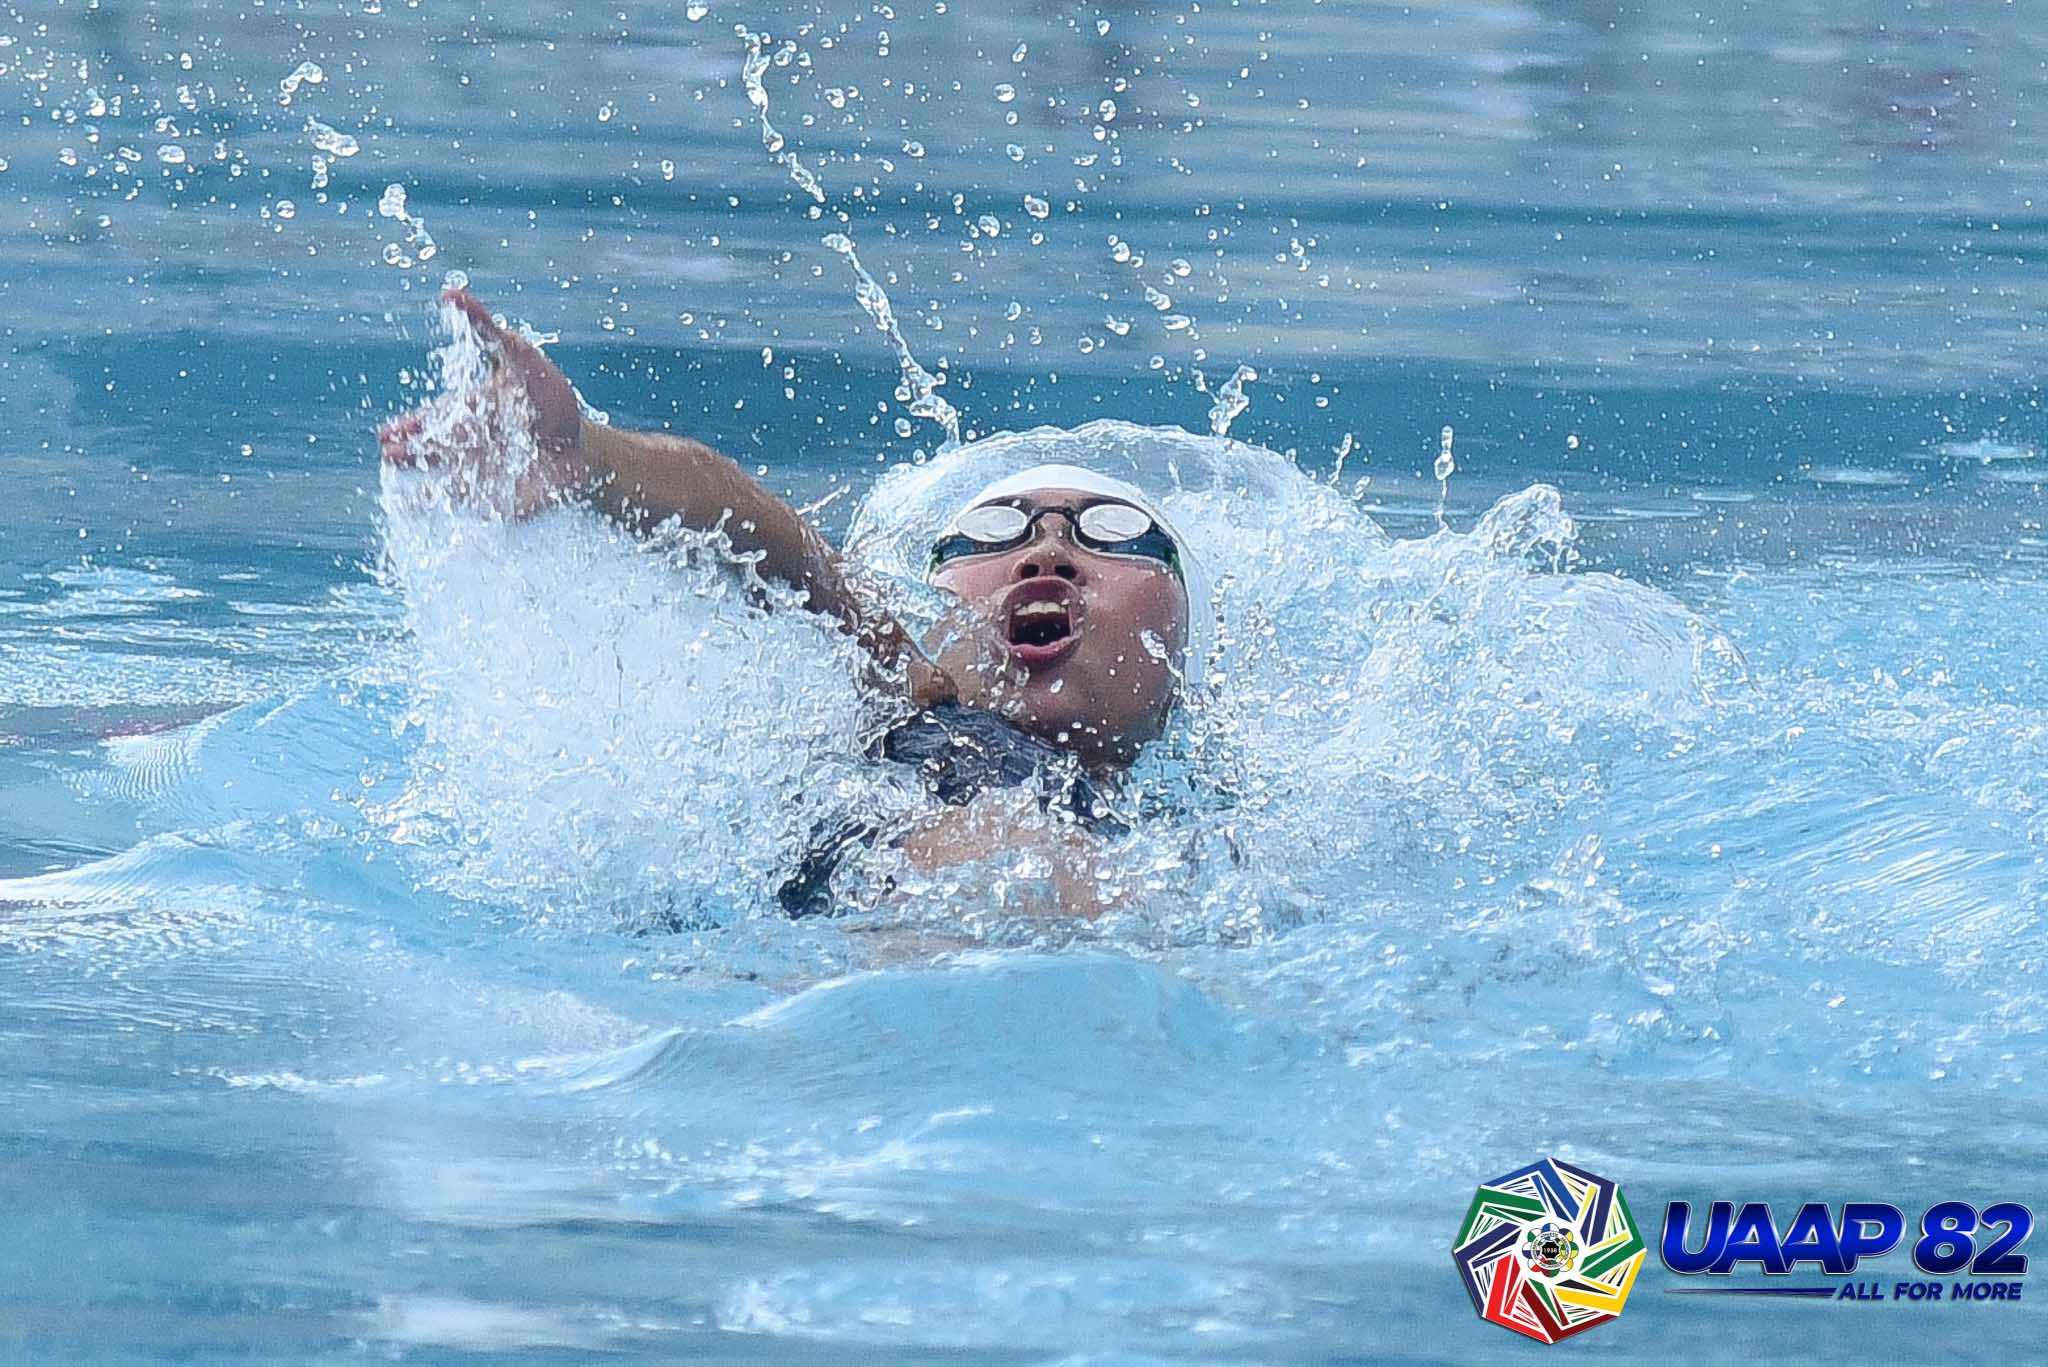 UAAP82-SWIMMING-12TH-PHOTO-100M-BACKSTROKE-GIRLS-UST-SHAYNE-LUGAY Junior Tigersharks shatter 200M relay record as UST on pace for High School double ADMU DLSU News Swimming UAAP UP UST  - philippine sports news